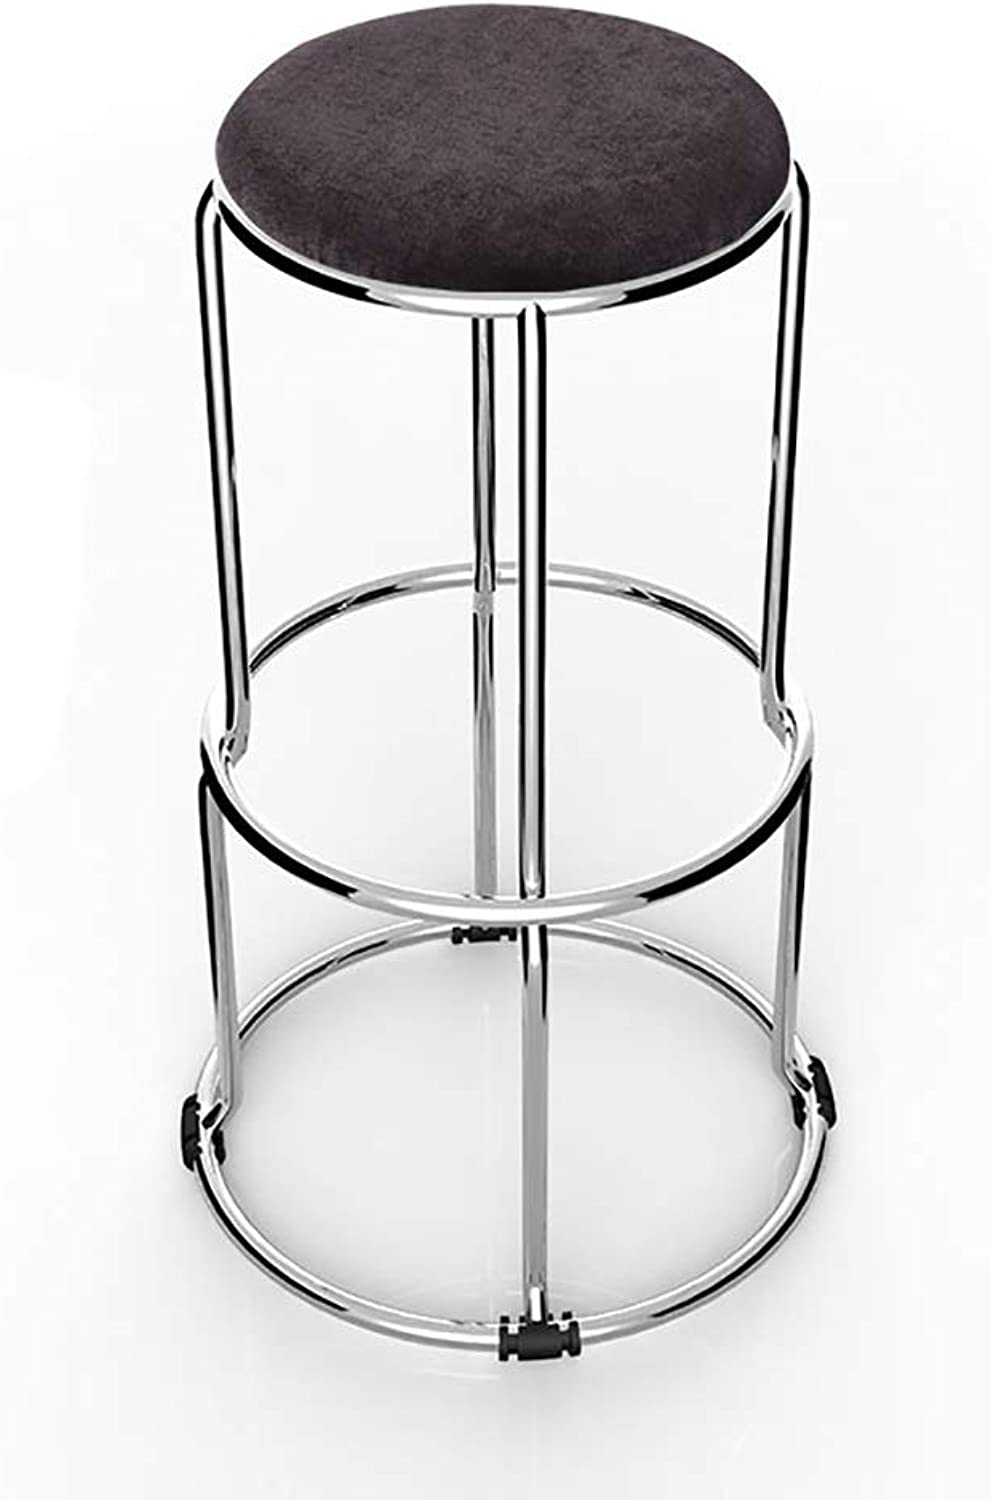 High Stool, Stainless Steel Stool, Kitchen Restaurant Dining Chair, 67cm for Laboratory Workshop Hospital Clinic Home School (color   A, Size   67CM)